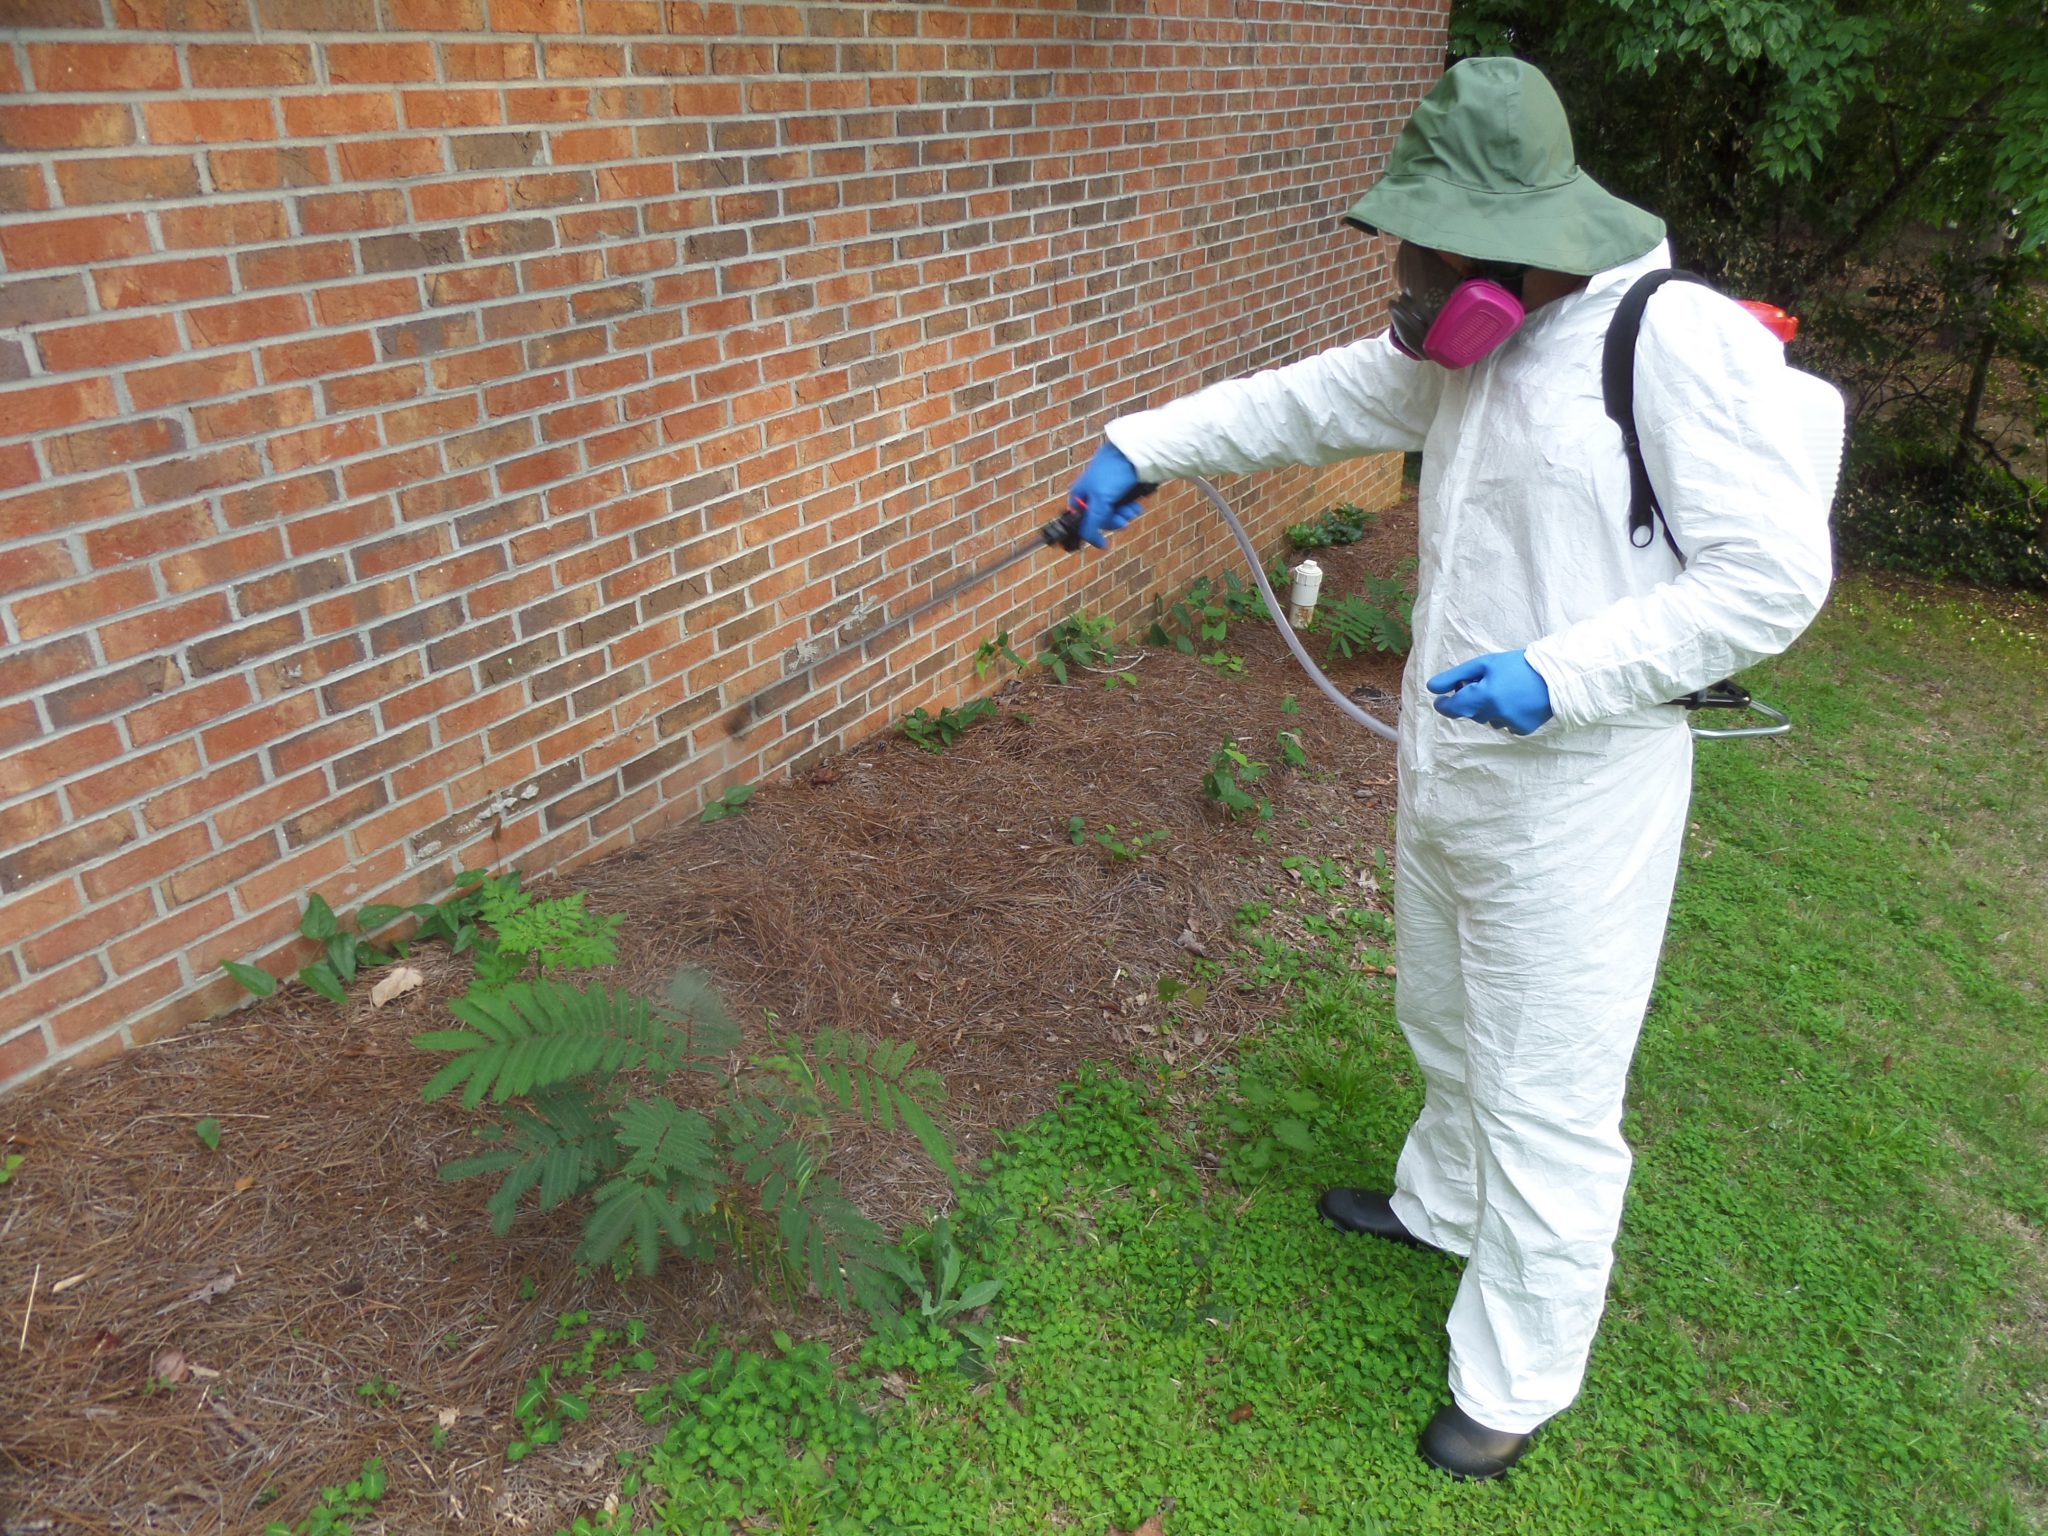 Applicator Spraying Pesticides in PPE